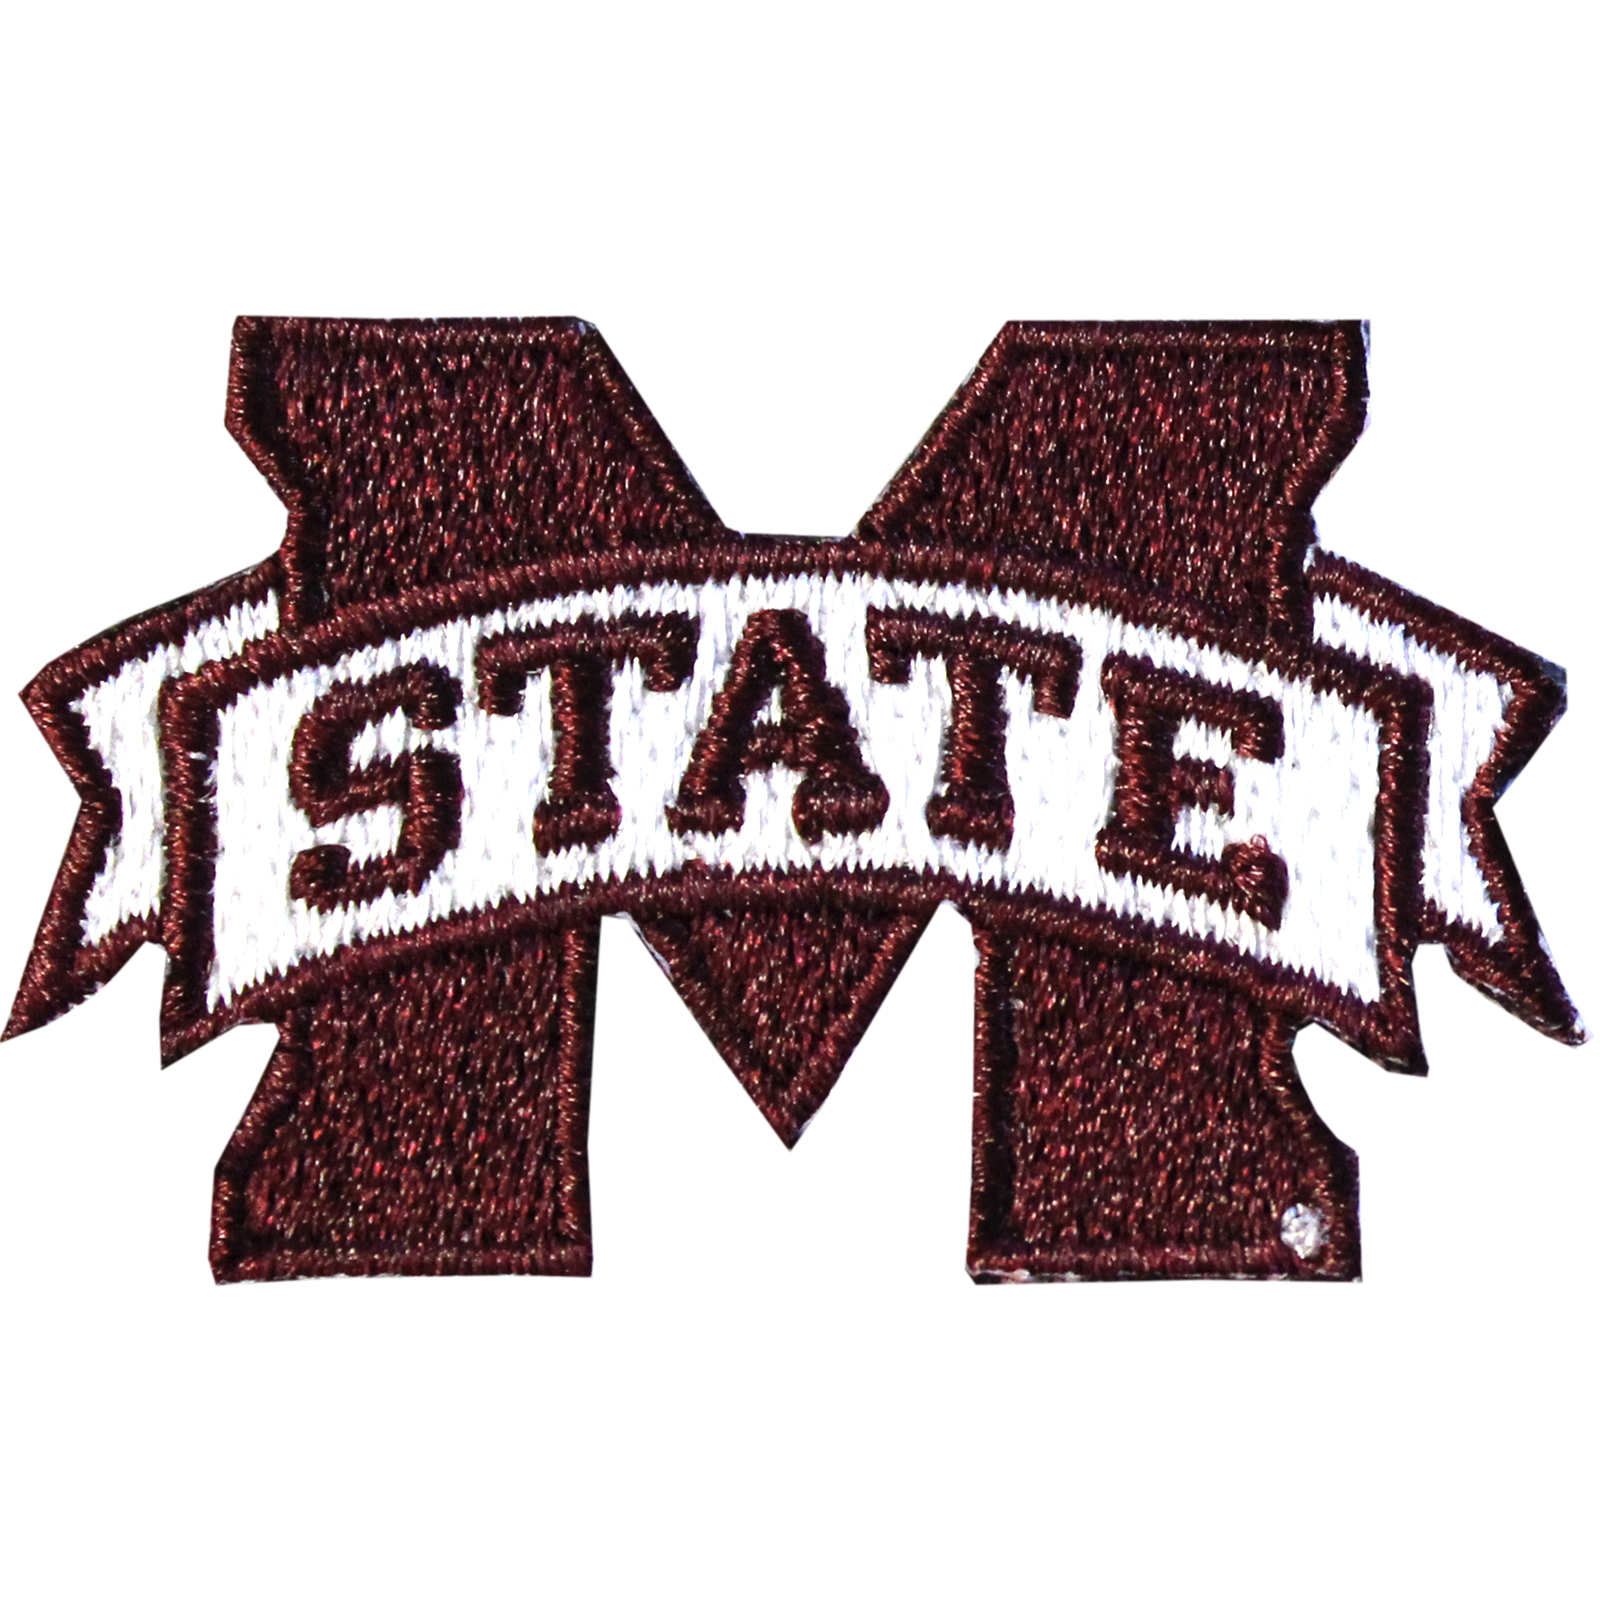 Mississippi State Bulldogs 'M State' Iron On Embroidered Patch Small